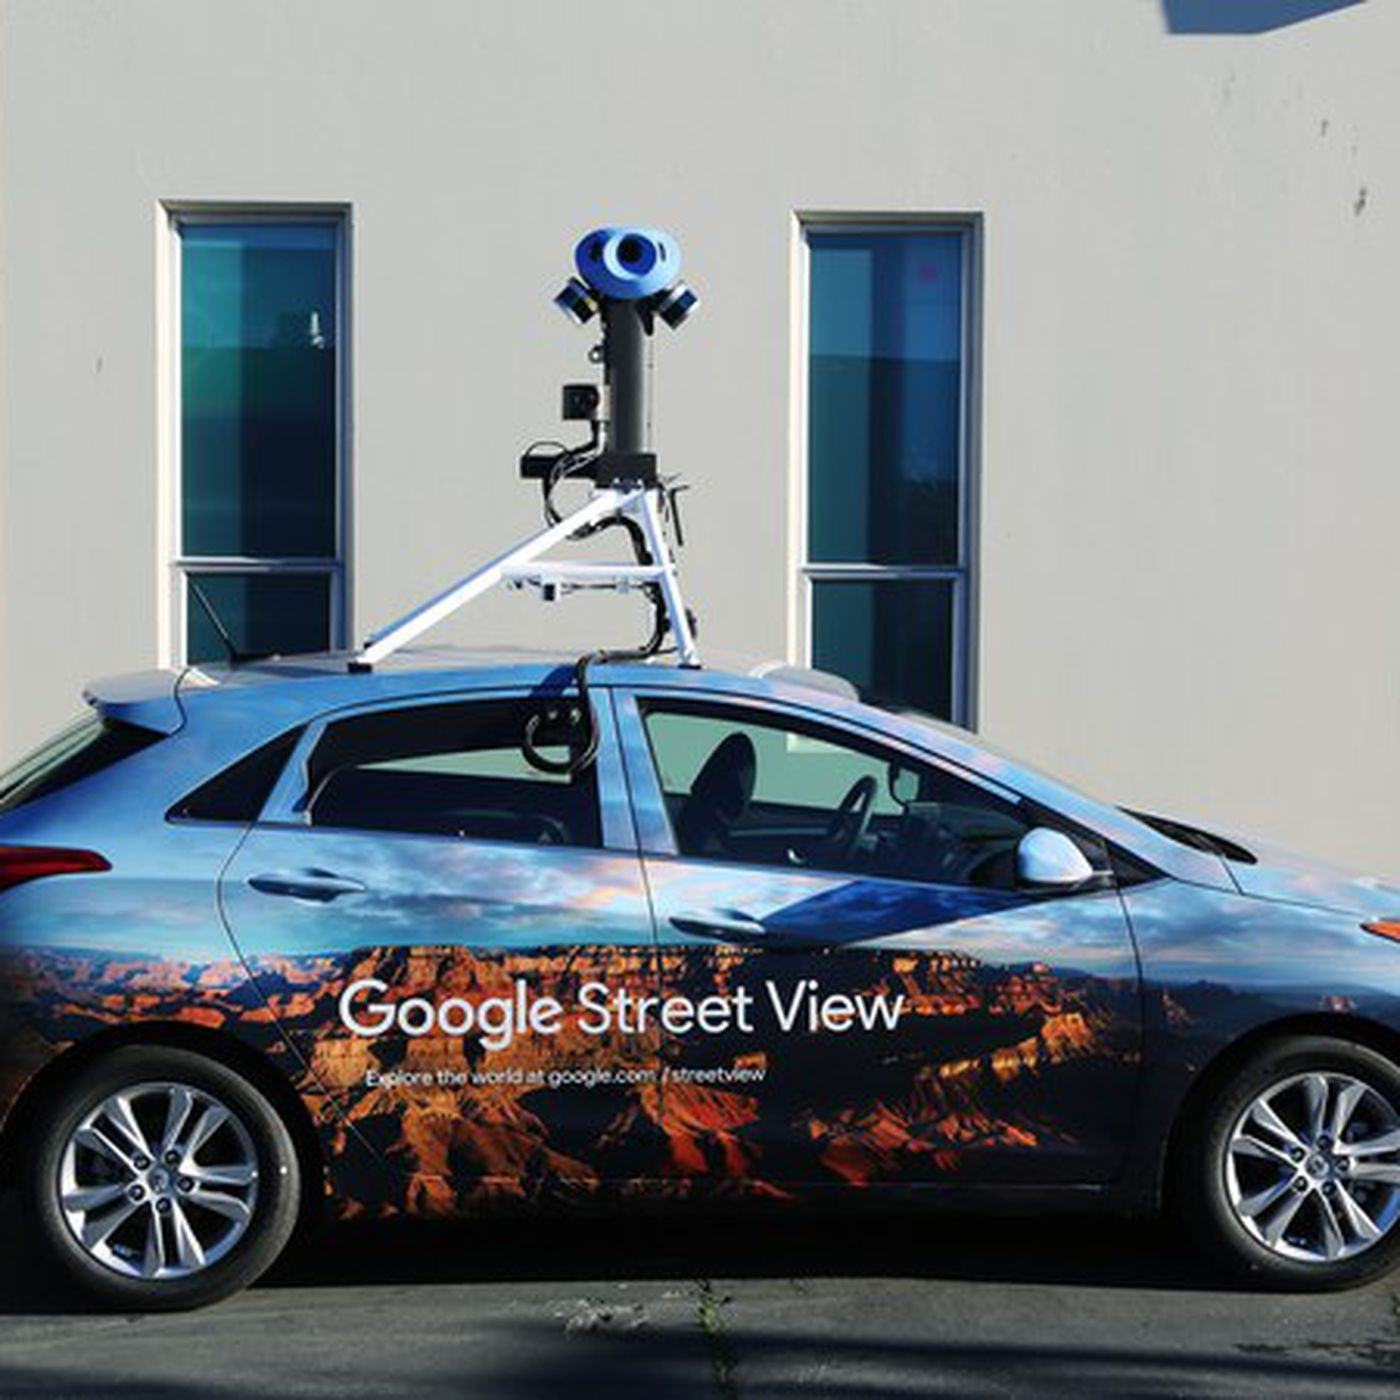 Google has updated its Street View cameras for the first ... on japan map, the netherlands map, britain map, sweden map, greece map, italy map, holland map, british isles map, spain map, world map, germany map, england map, canada map, morocco map, asia map, france map, ukraine map, australia map, united kingdom map, europe map,